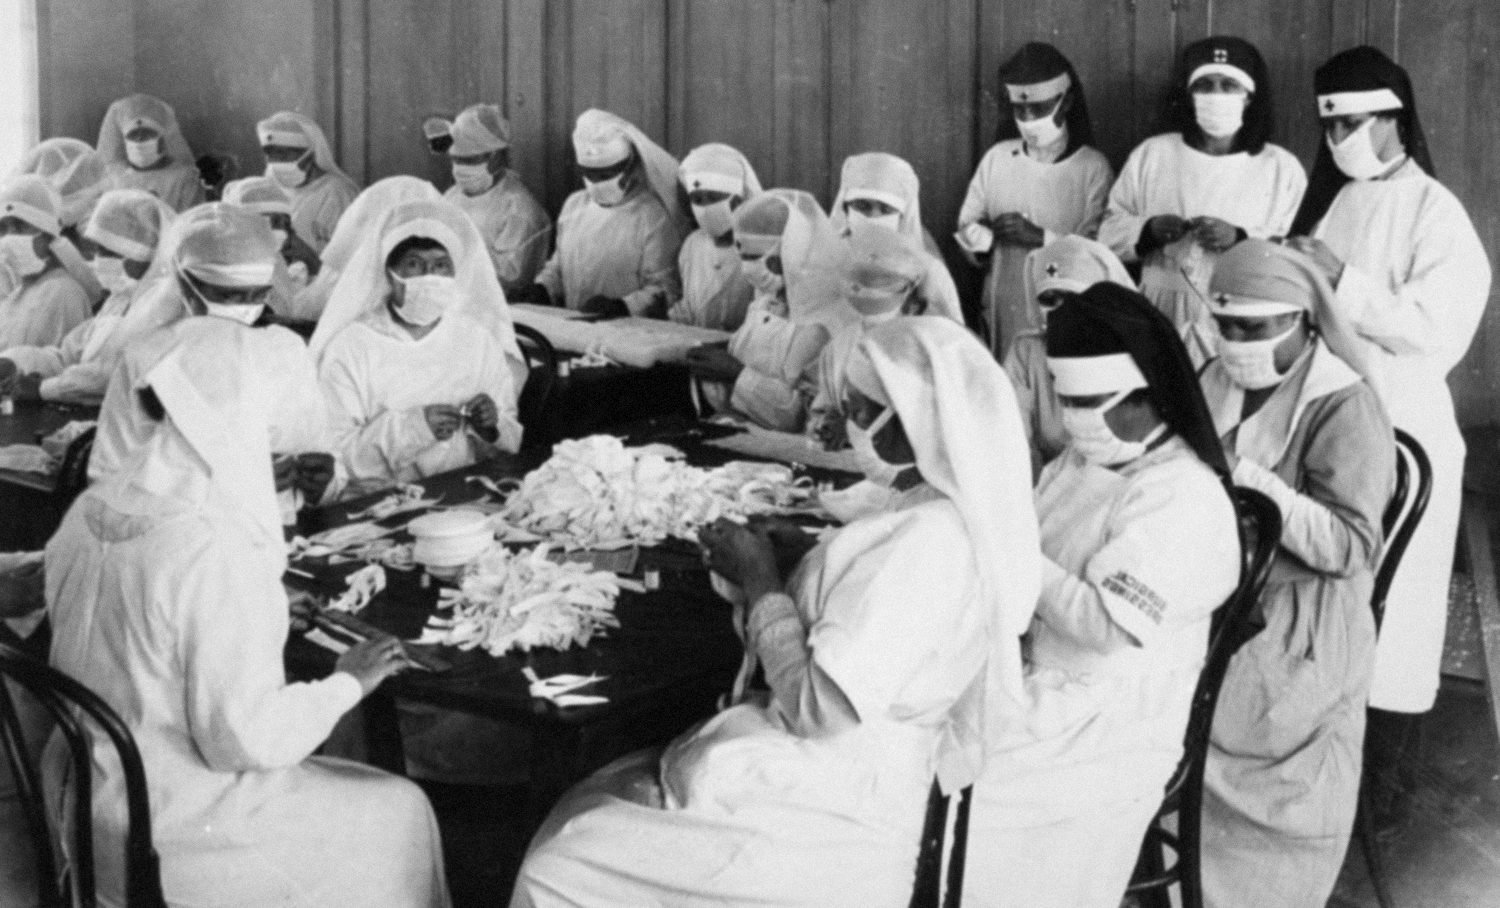 Volunteer caregivers from The American red cross during flu epidemic in 1918.